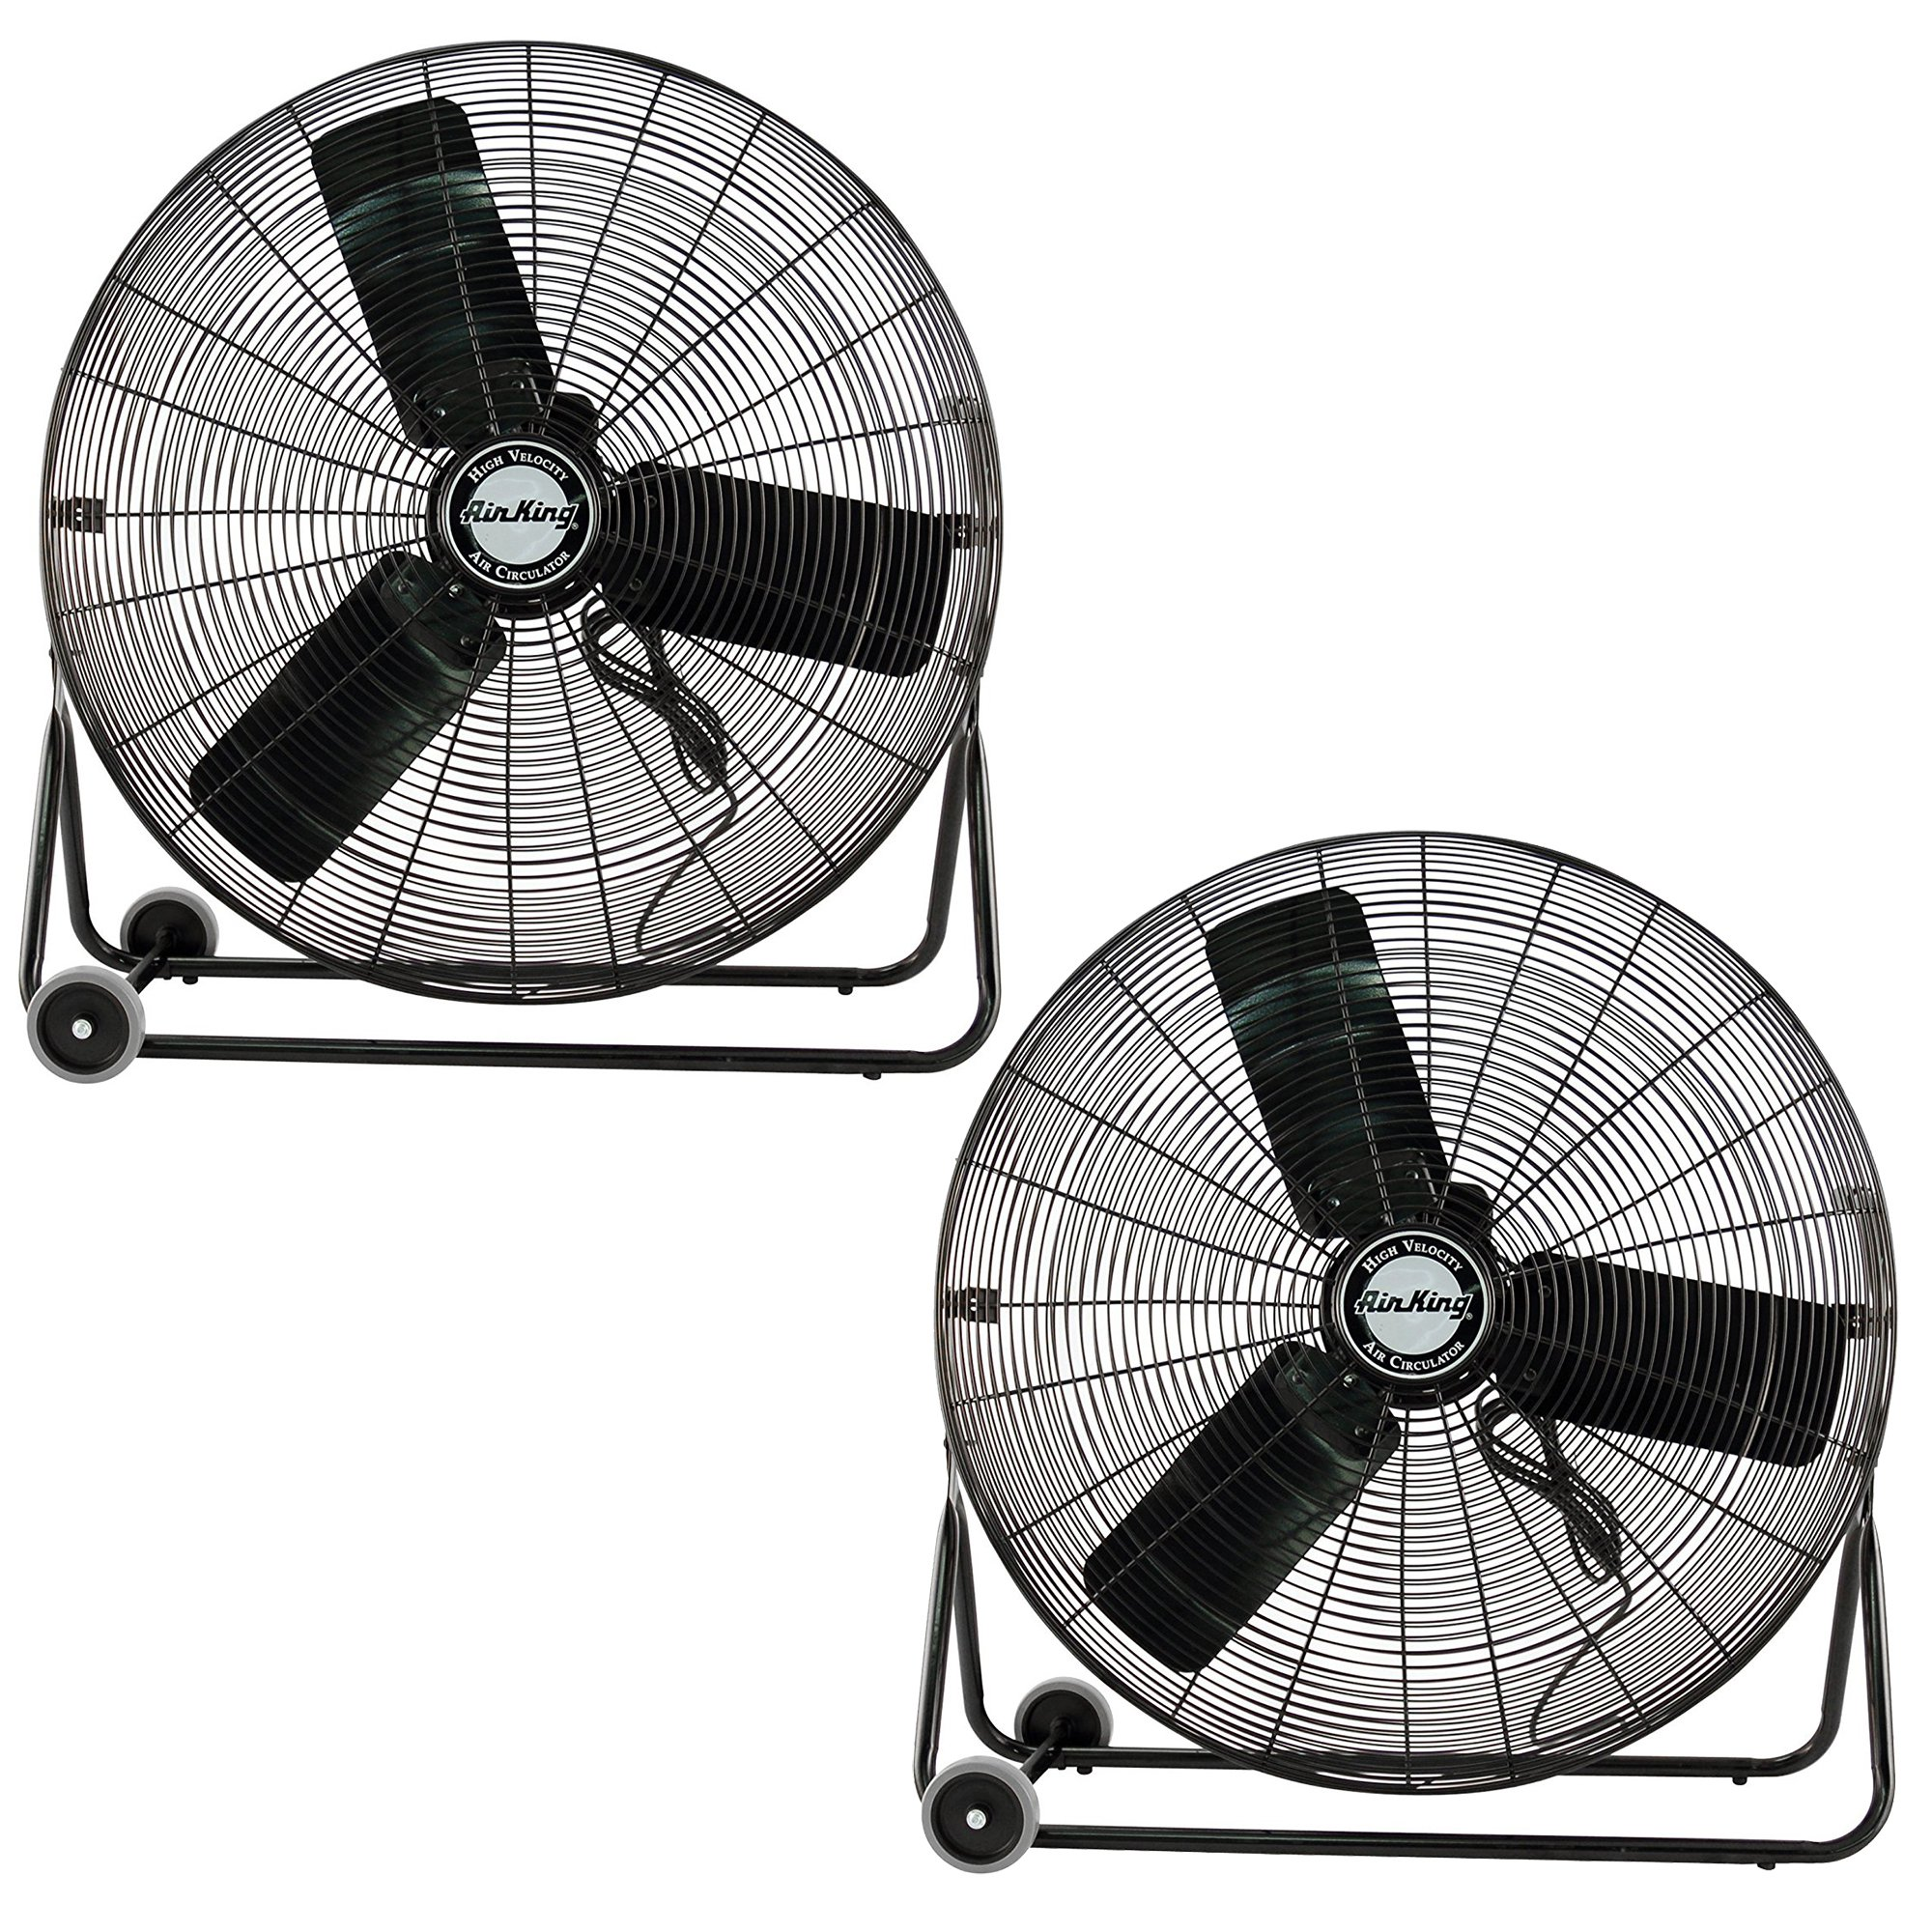 Air King 3 Speed 1/4 HP 120 Volt 30 Inch Enclosed Pivoting Floor Fan (2 Pack)